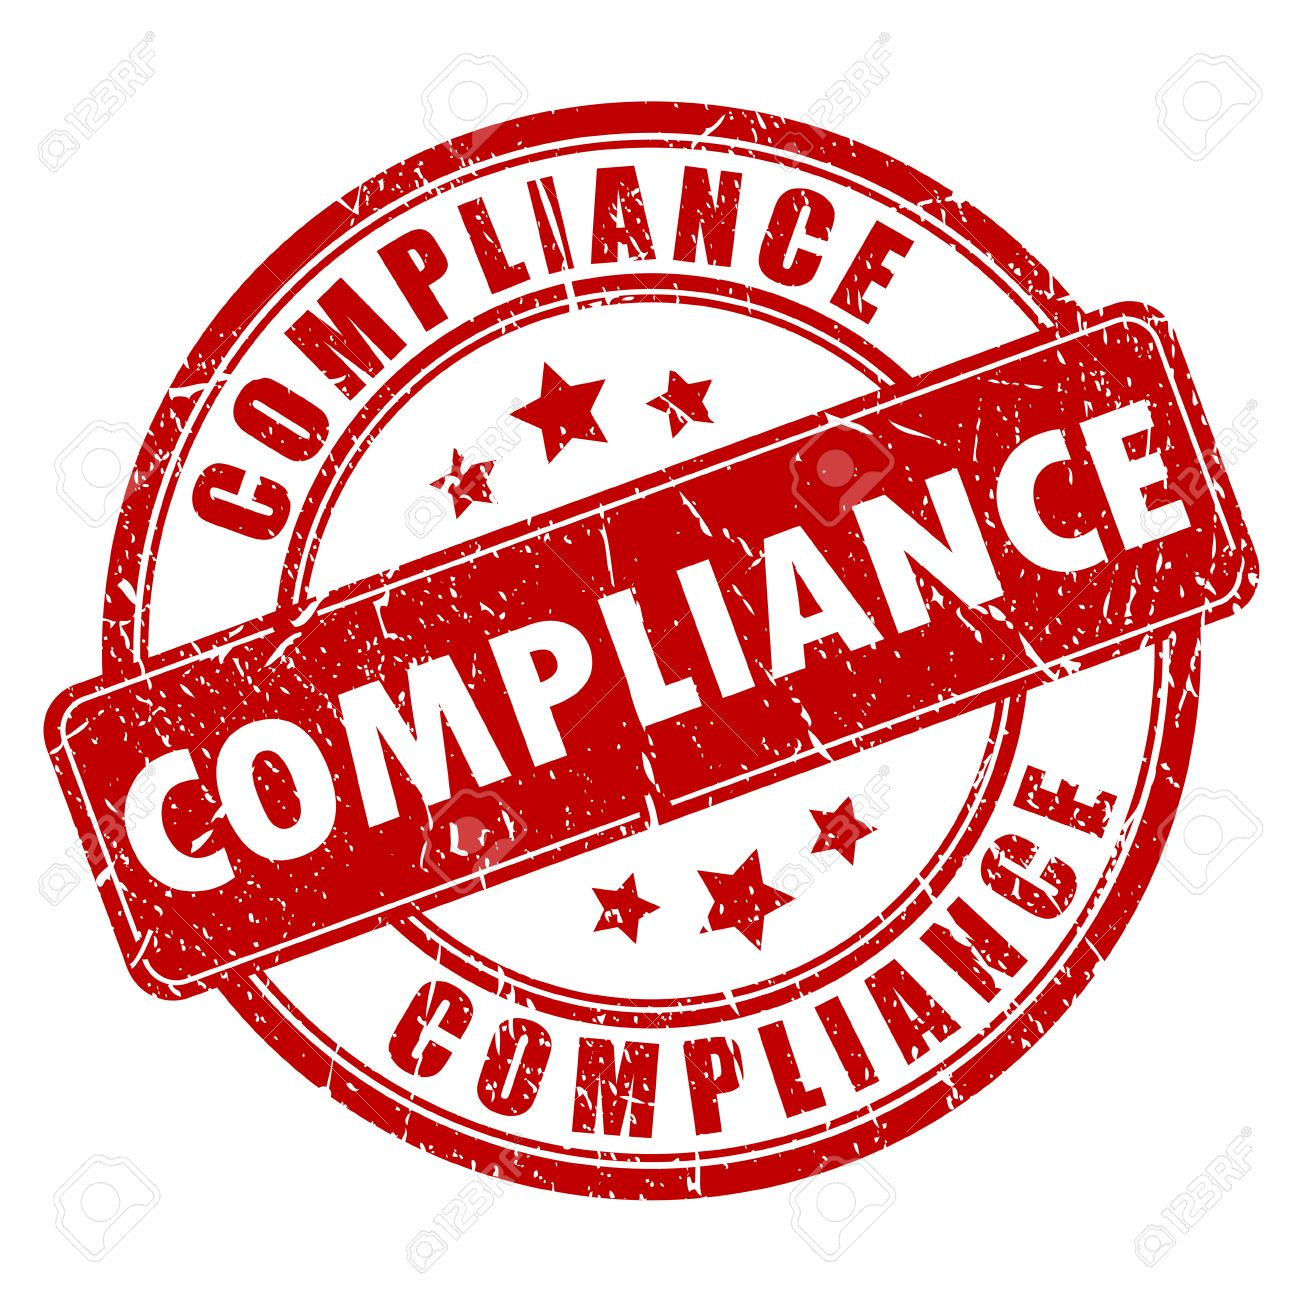 compliance stock photos images royalty free compliance images and